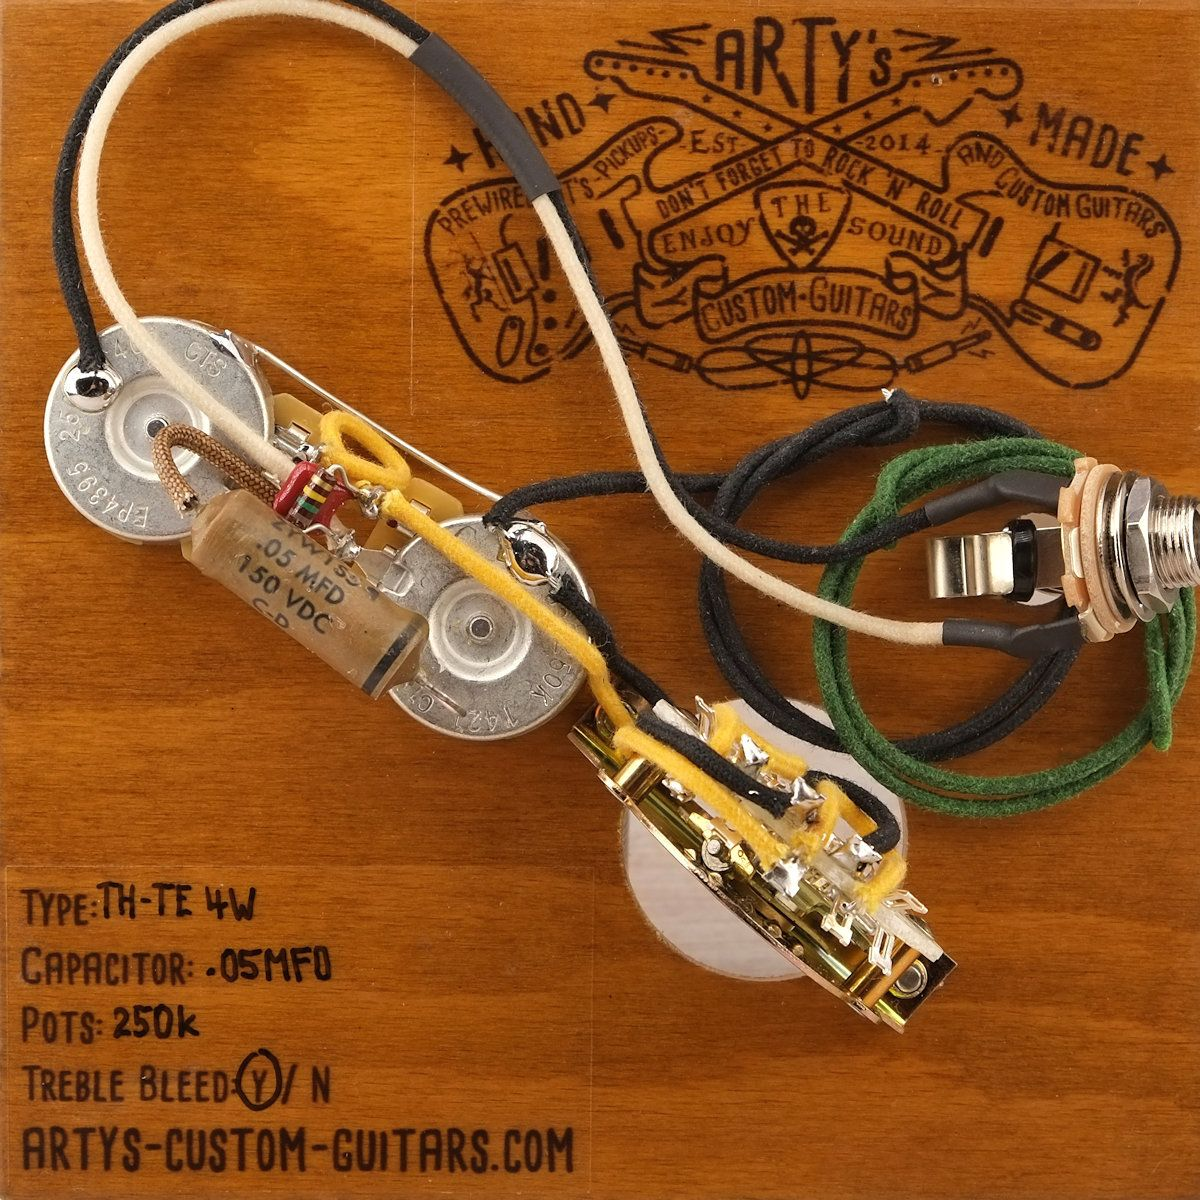 hight resolution of arty s custom guitars 4 way premium vintage pre wired prewired kit wiring assembly harness arty